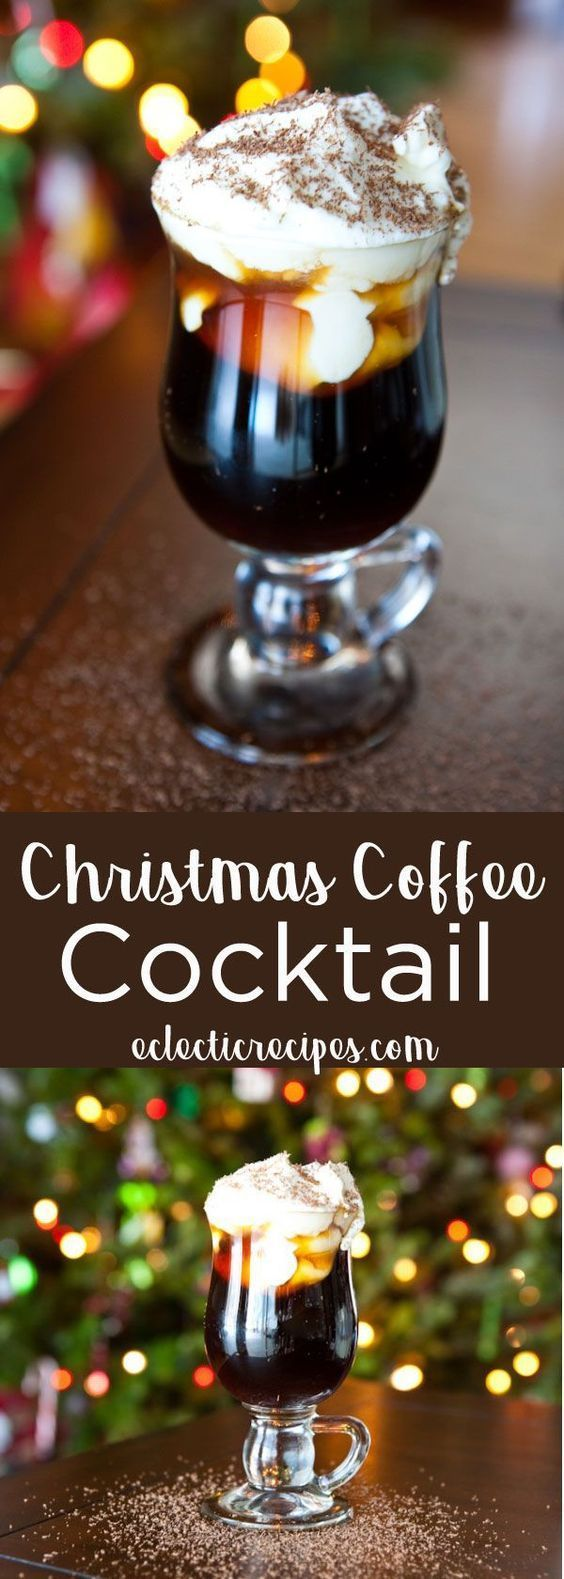 Eclectic Recipes How to Make a Christmas Coffee Cocktail for the Holidays #Coffe…   – Christmas Food, Desserts, and Drinks